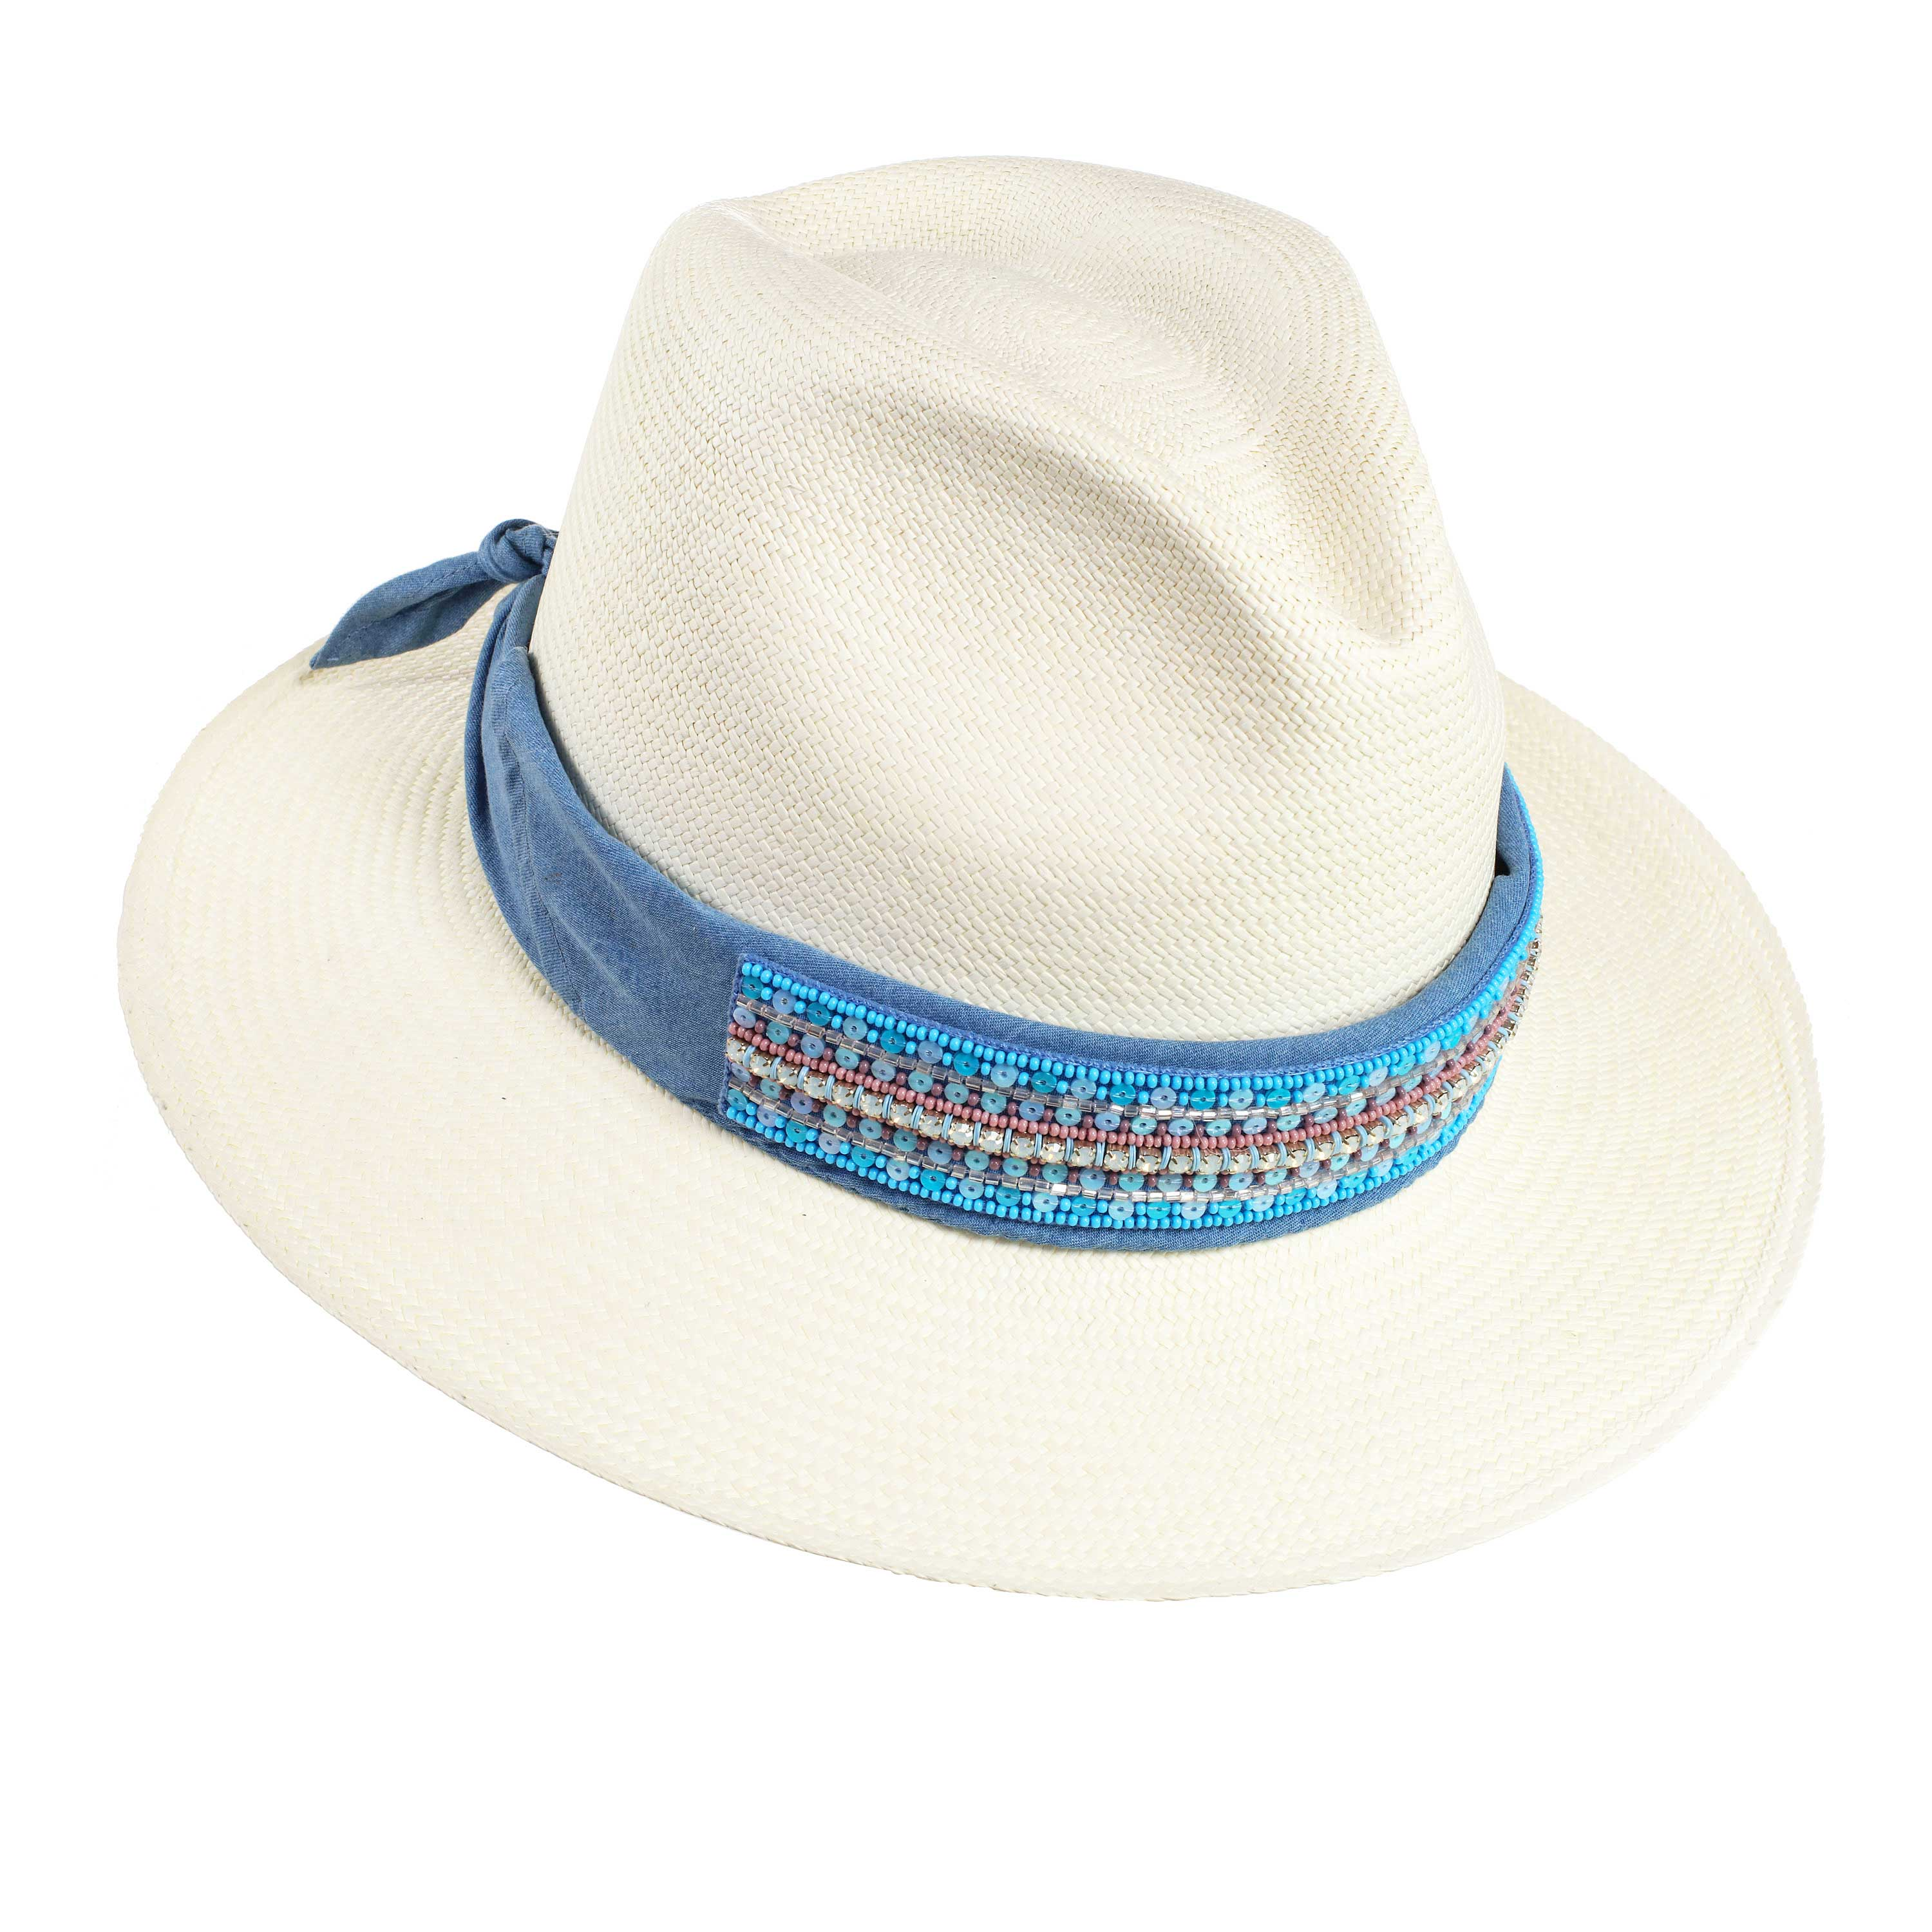 ST. TROPEZ LIGHT BLUE PANAMA HAT